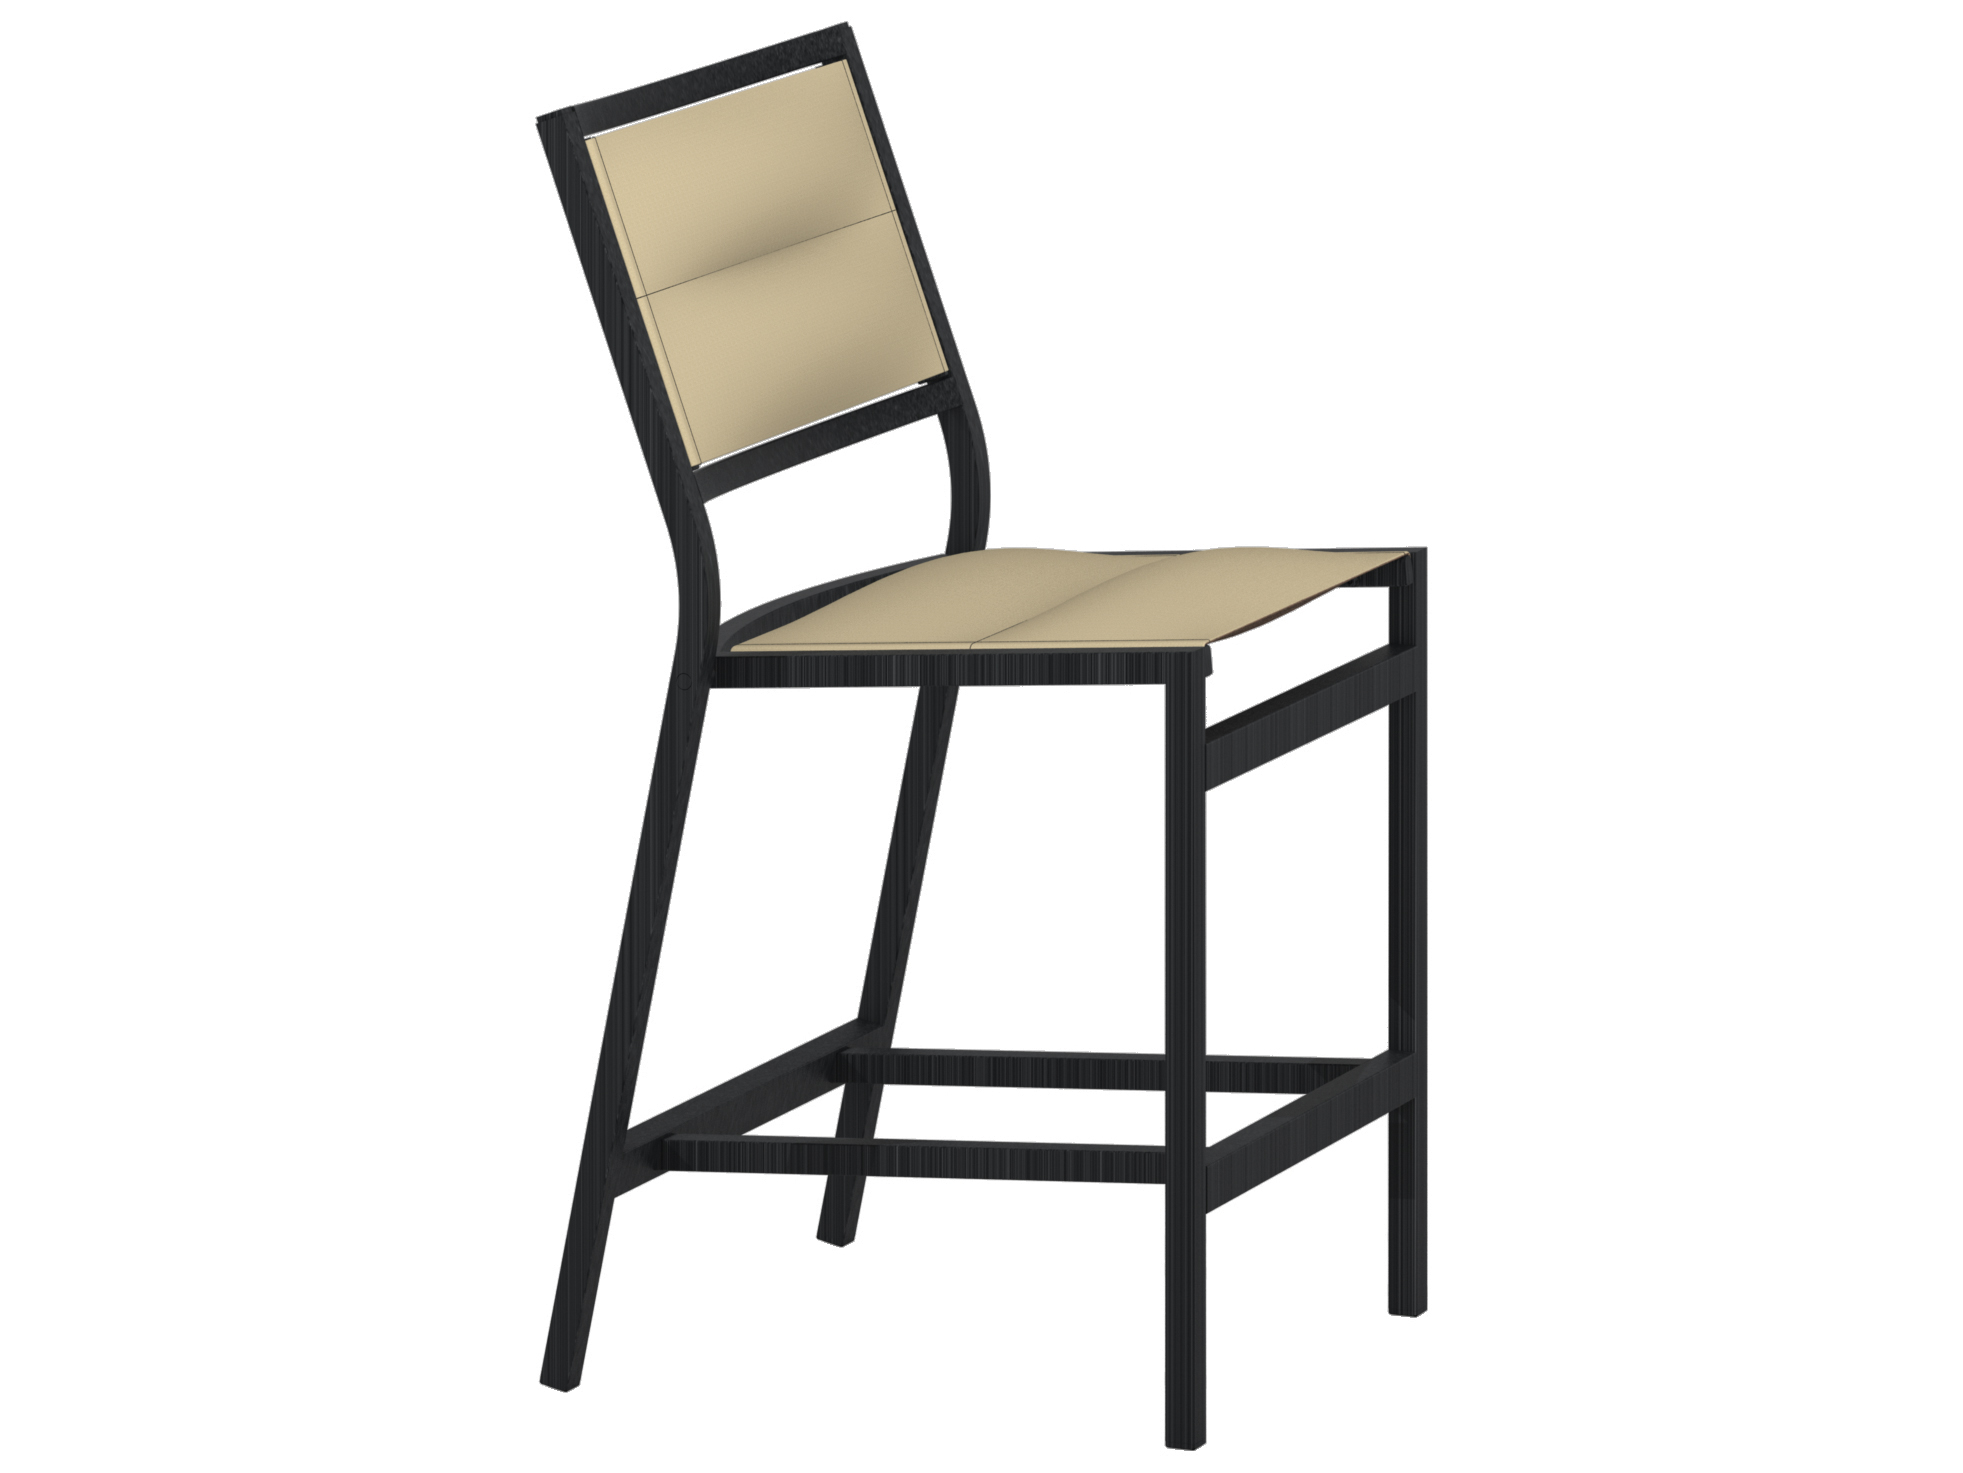 Fantastic Tropitone Cabana Club Aluminum Padded Sling Armless Stationary Counter Height Andrewgaddart Wooden Chair Designs For Living Room Andrewgaddartcom